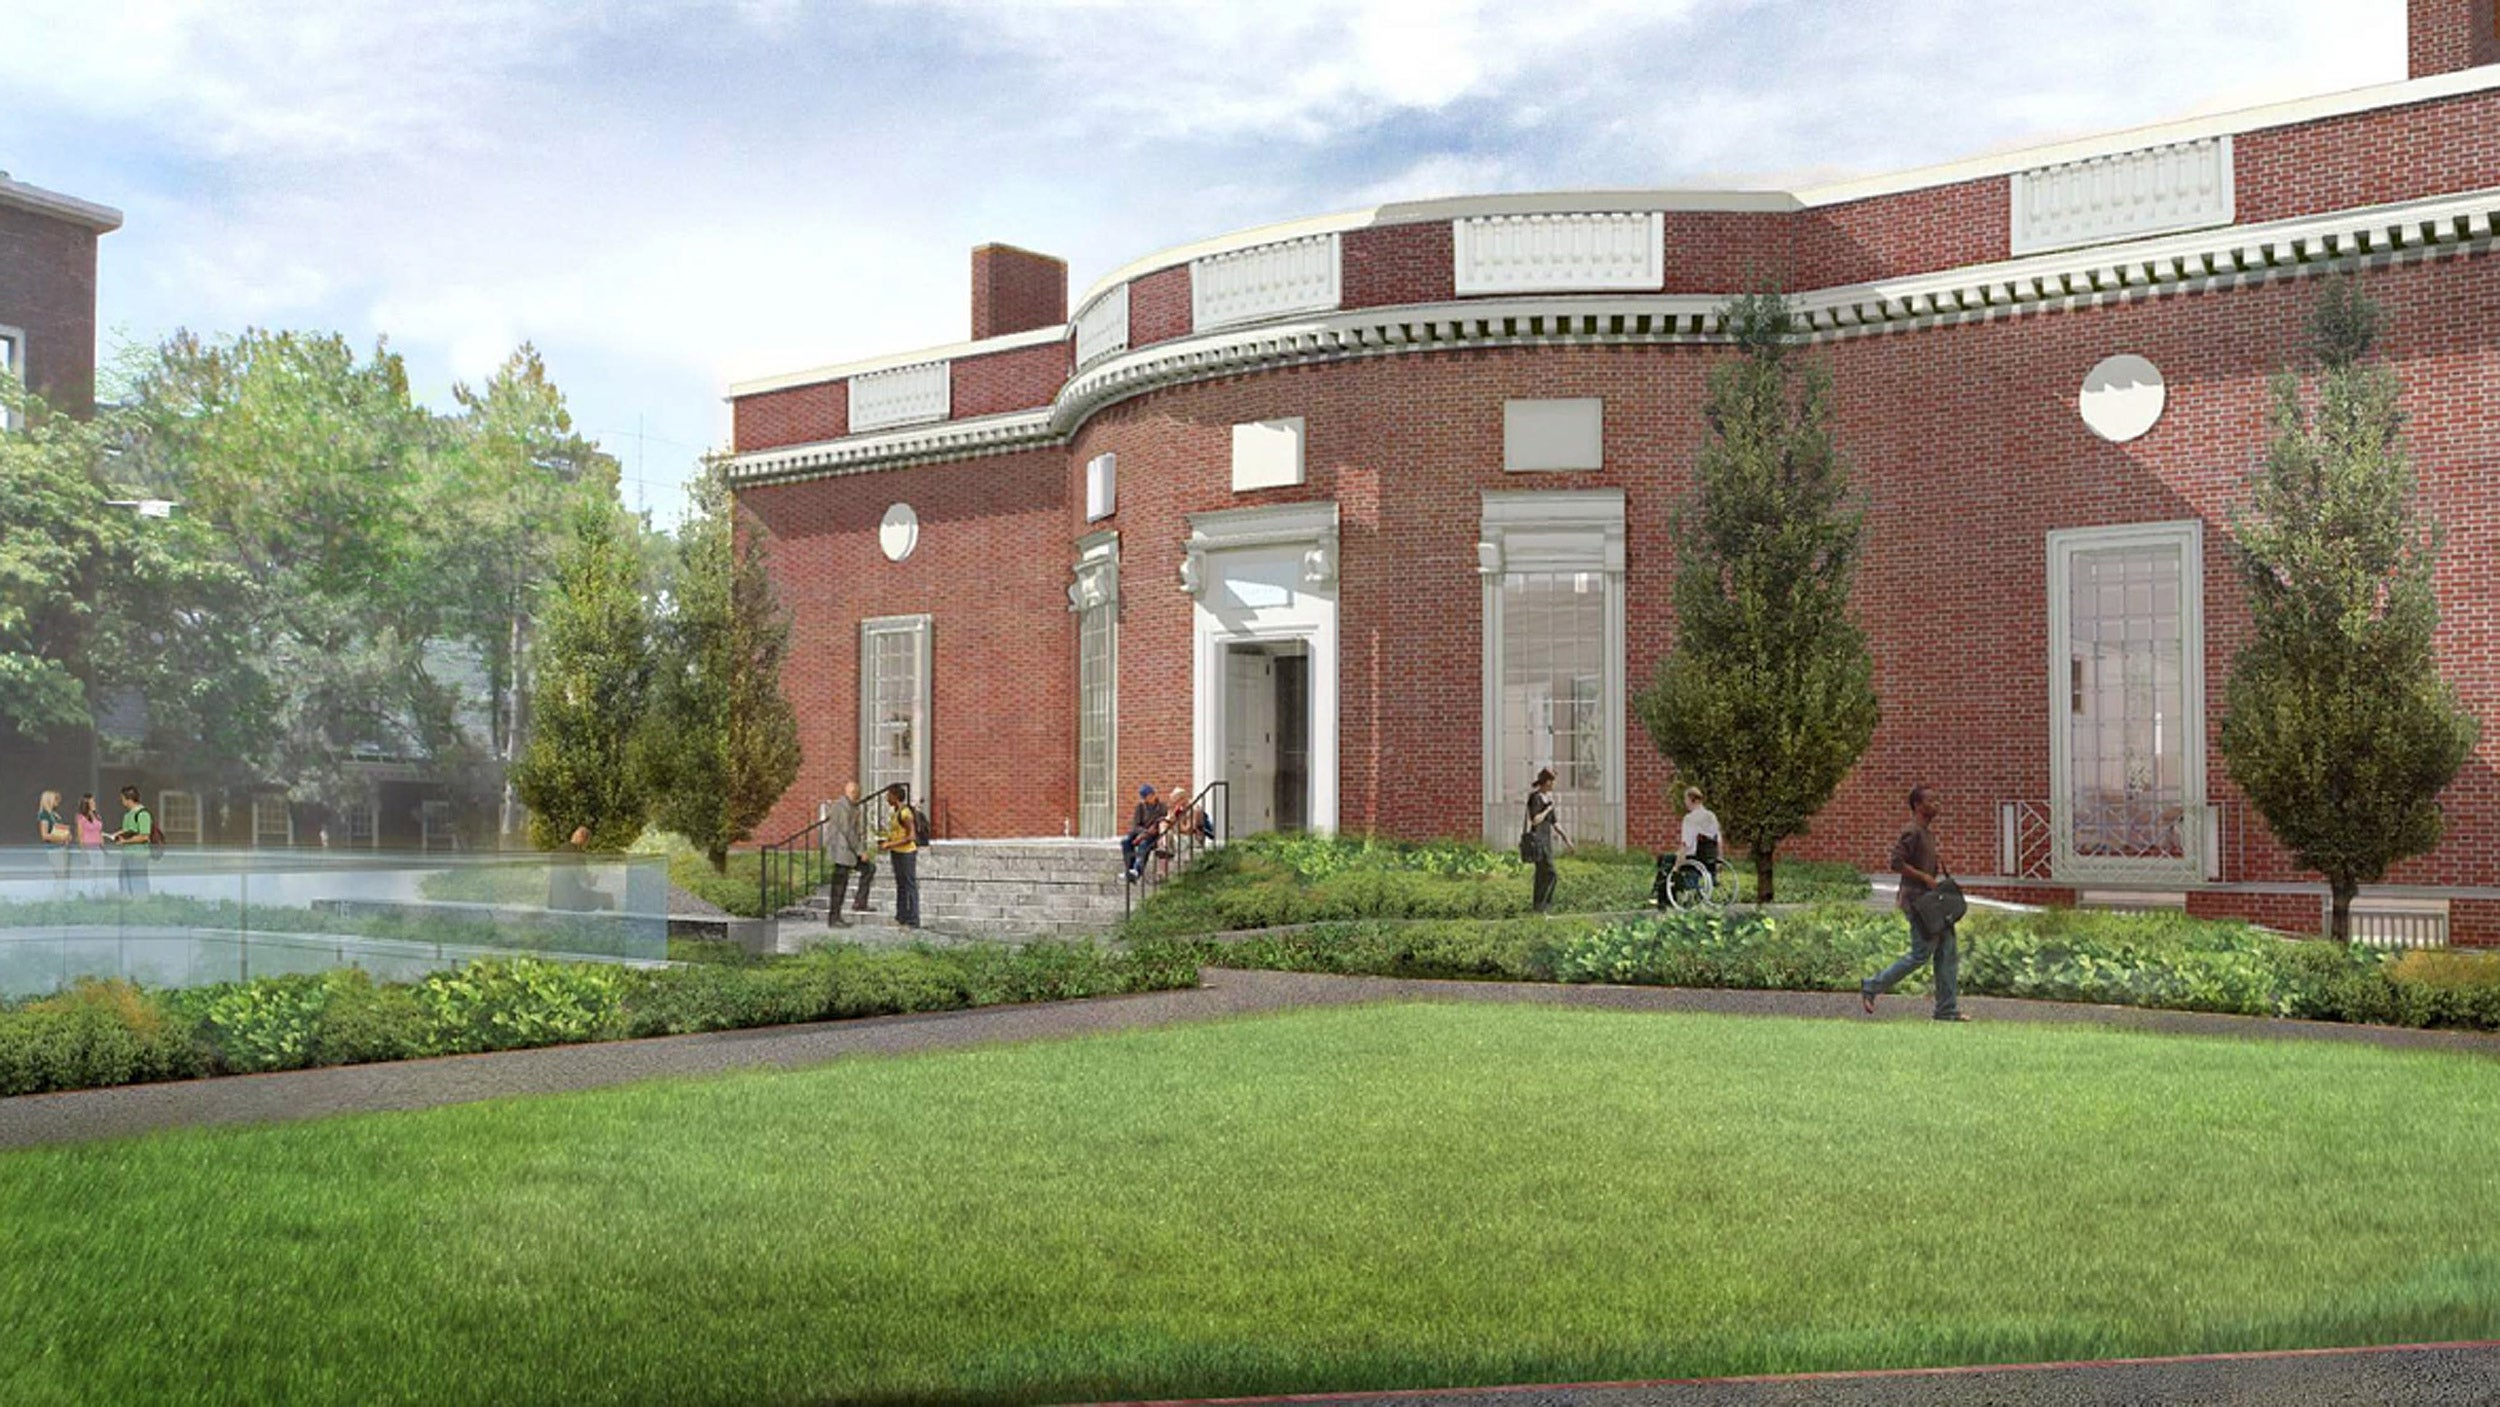 Rendering of Houghton Library showing ramped entrance, landscape design.